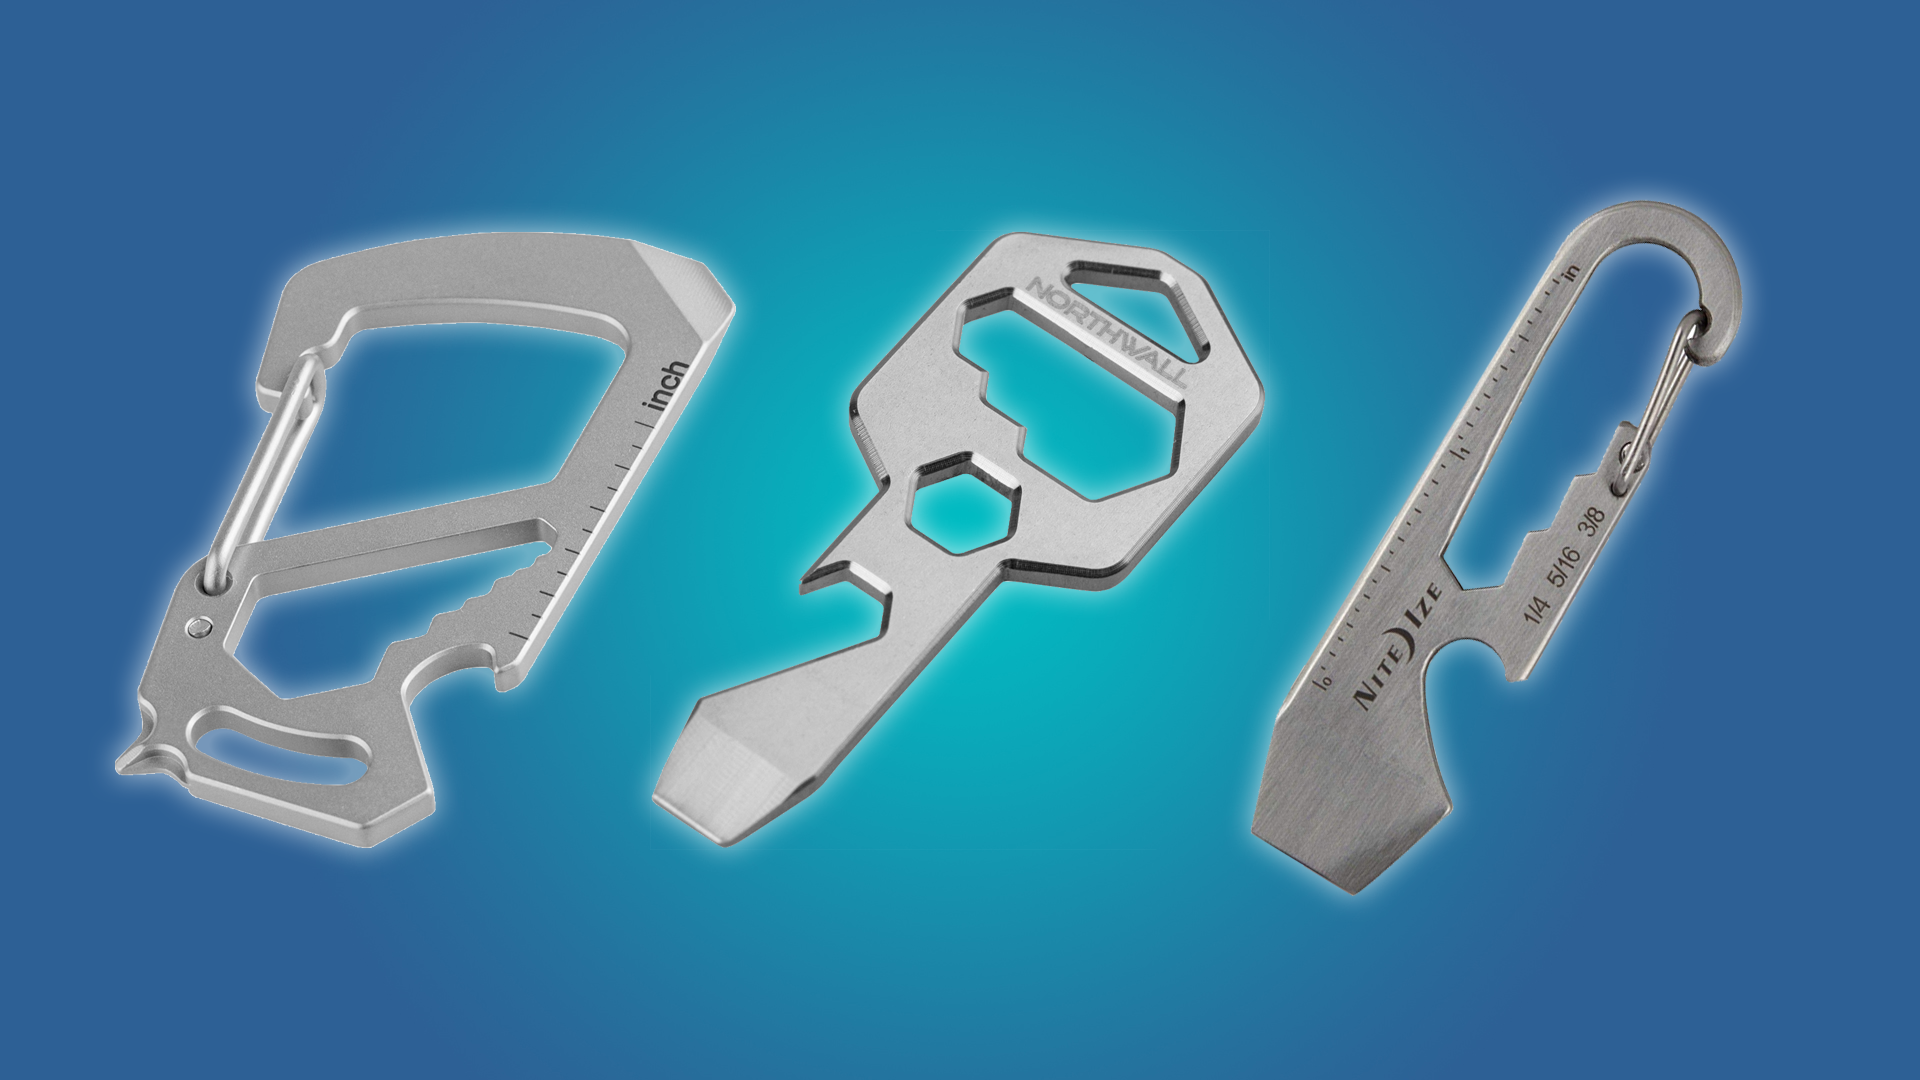 The Northwall Key Shaped Multi-Tool, the Northwall carabiner Multi-Tool, and the Nite Ize DoohicKey Multi-Tool